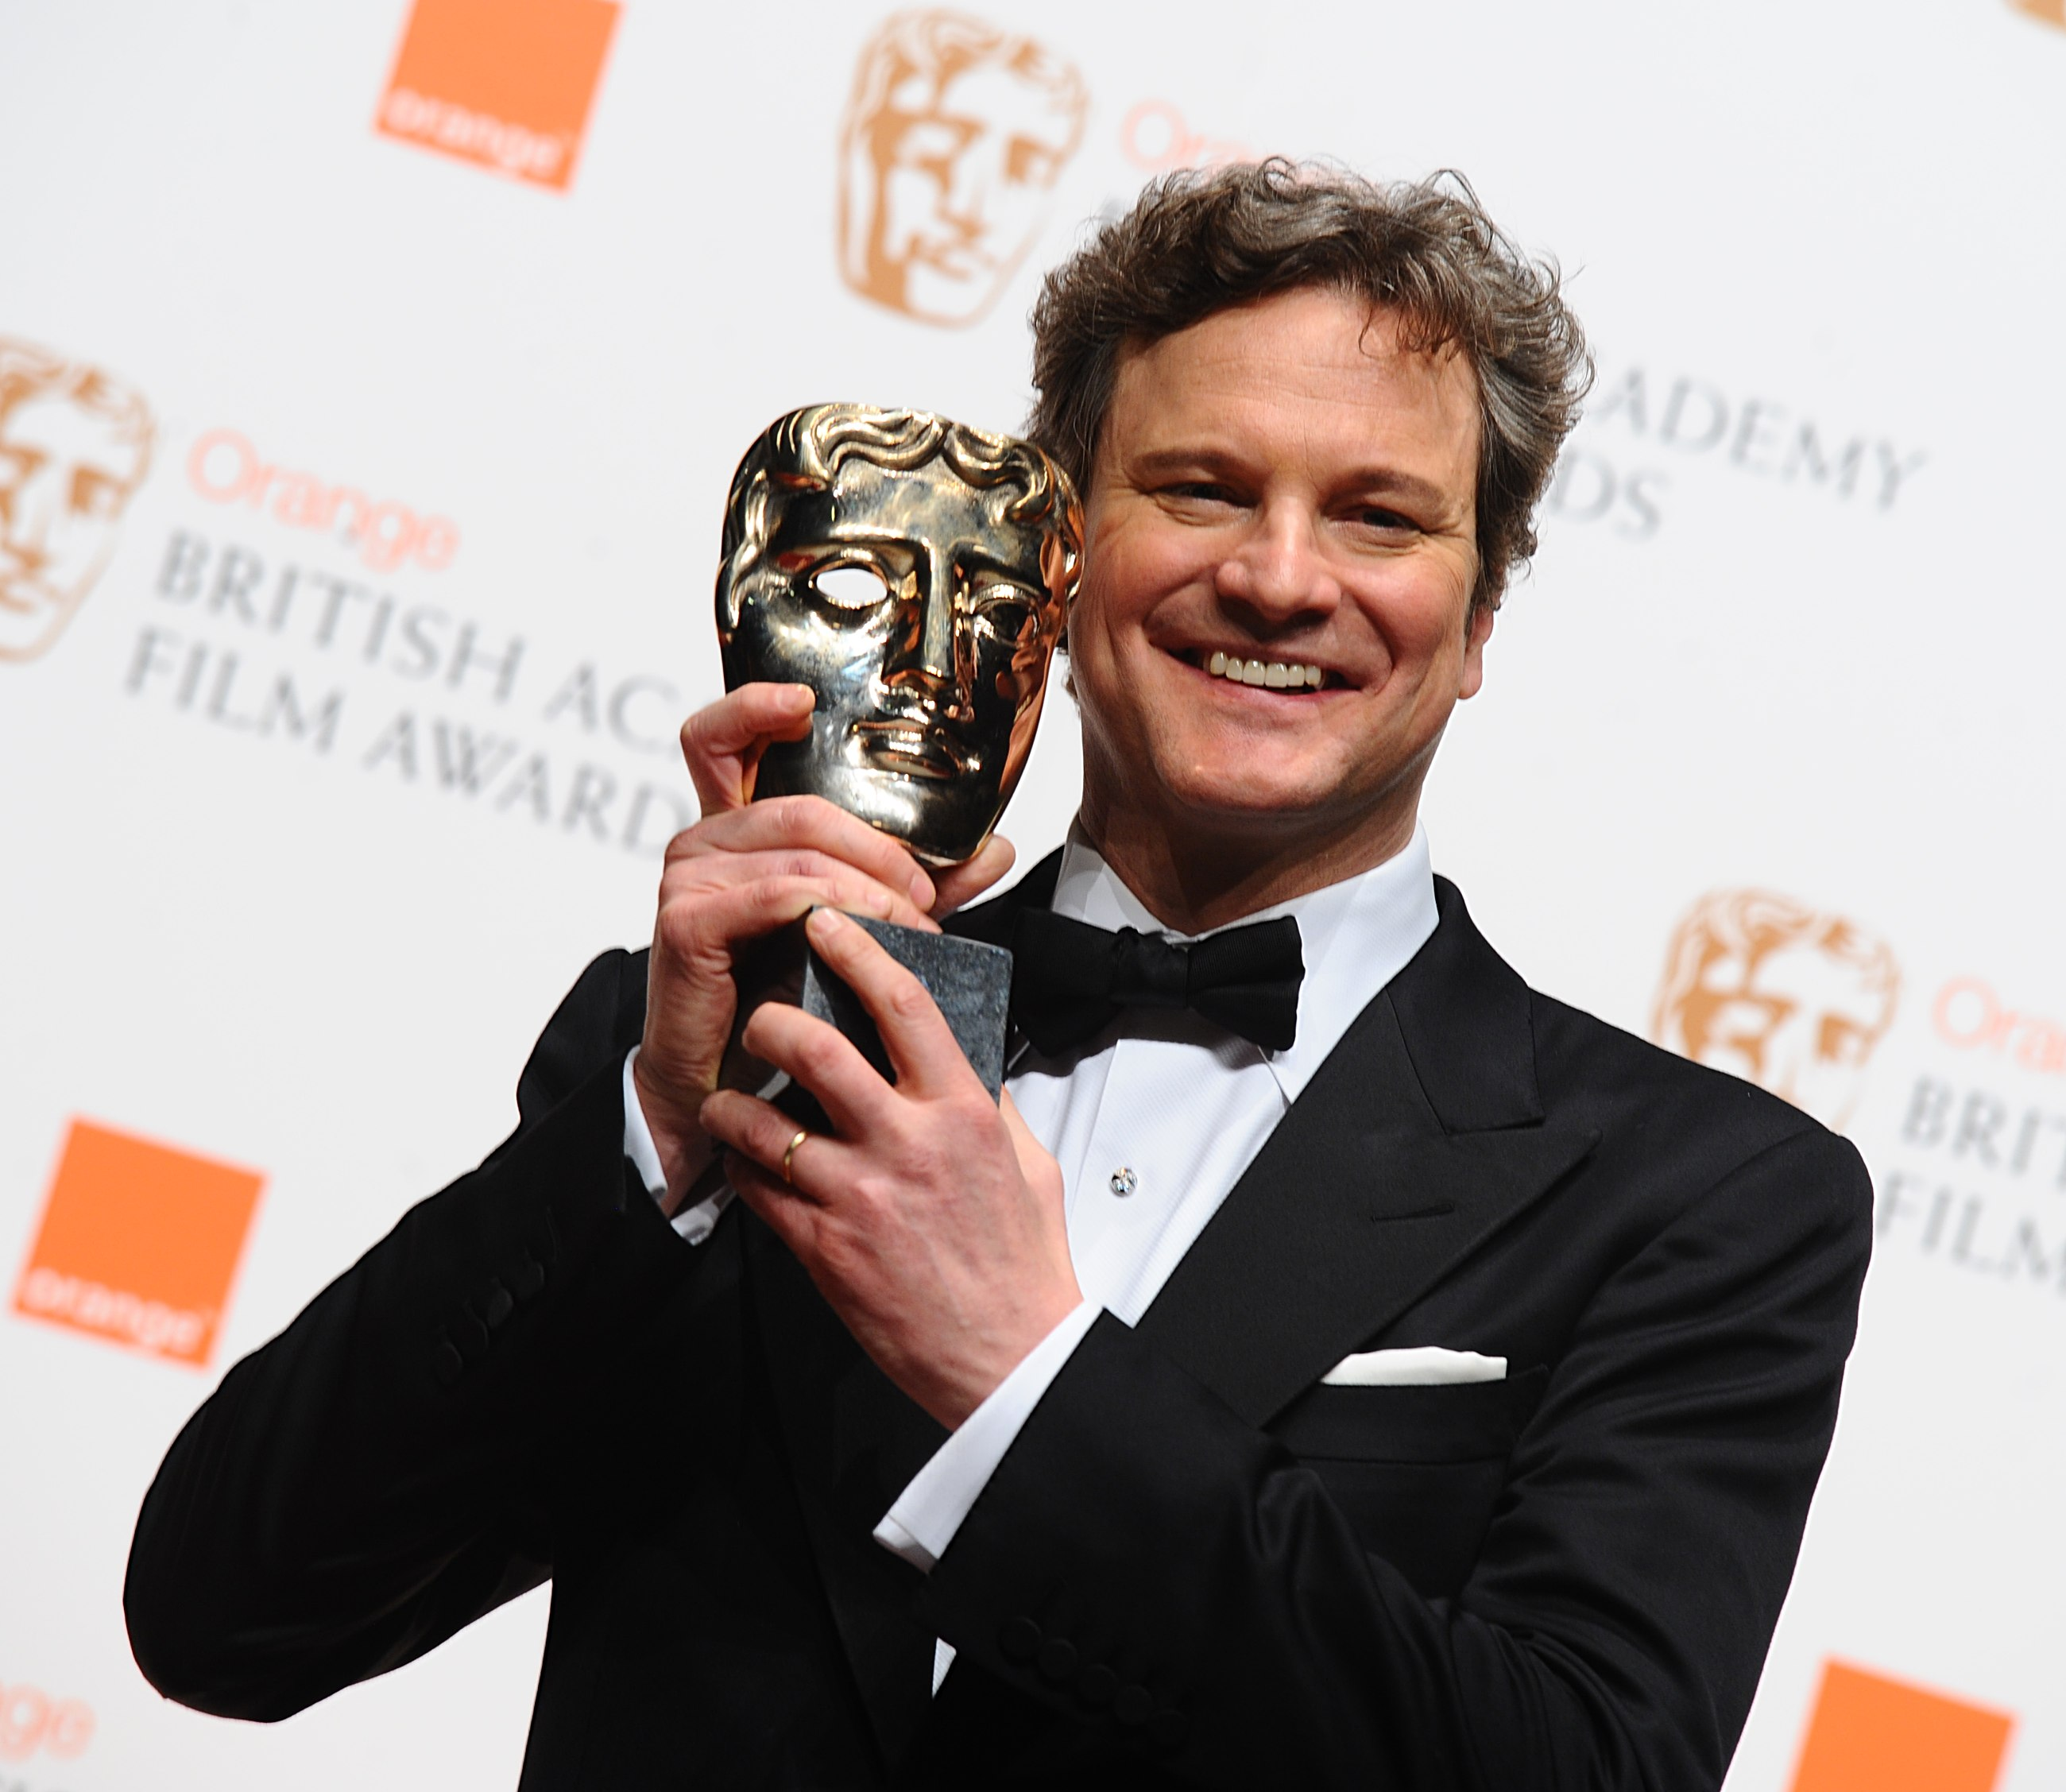 King's Speech wins big at Bafta film awards